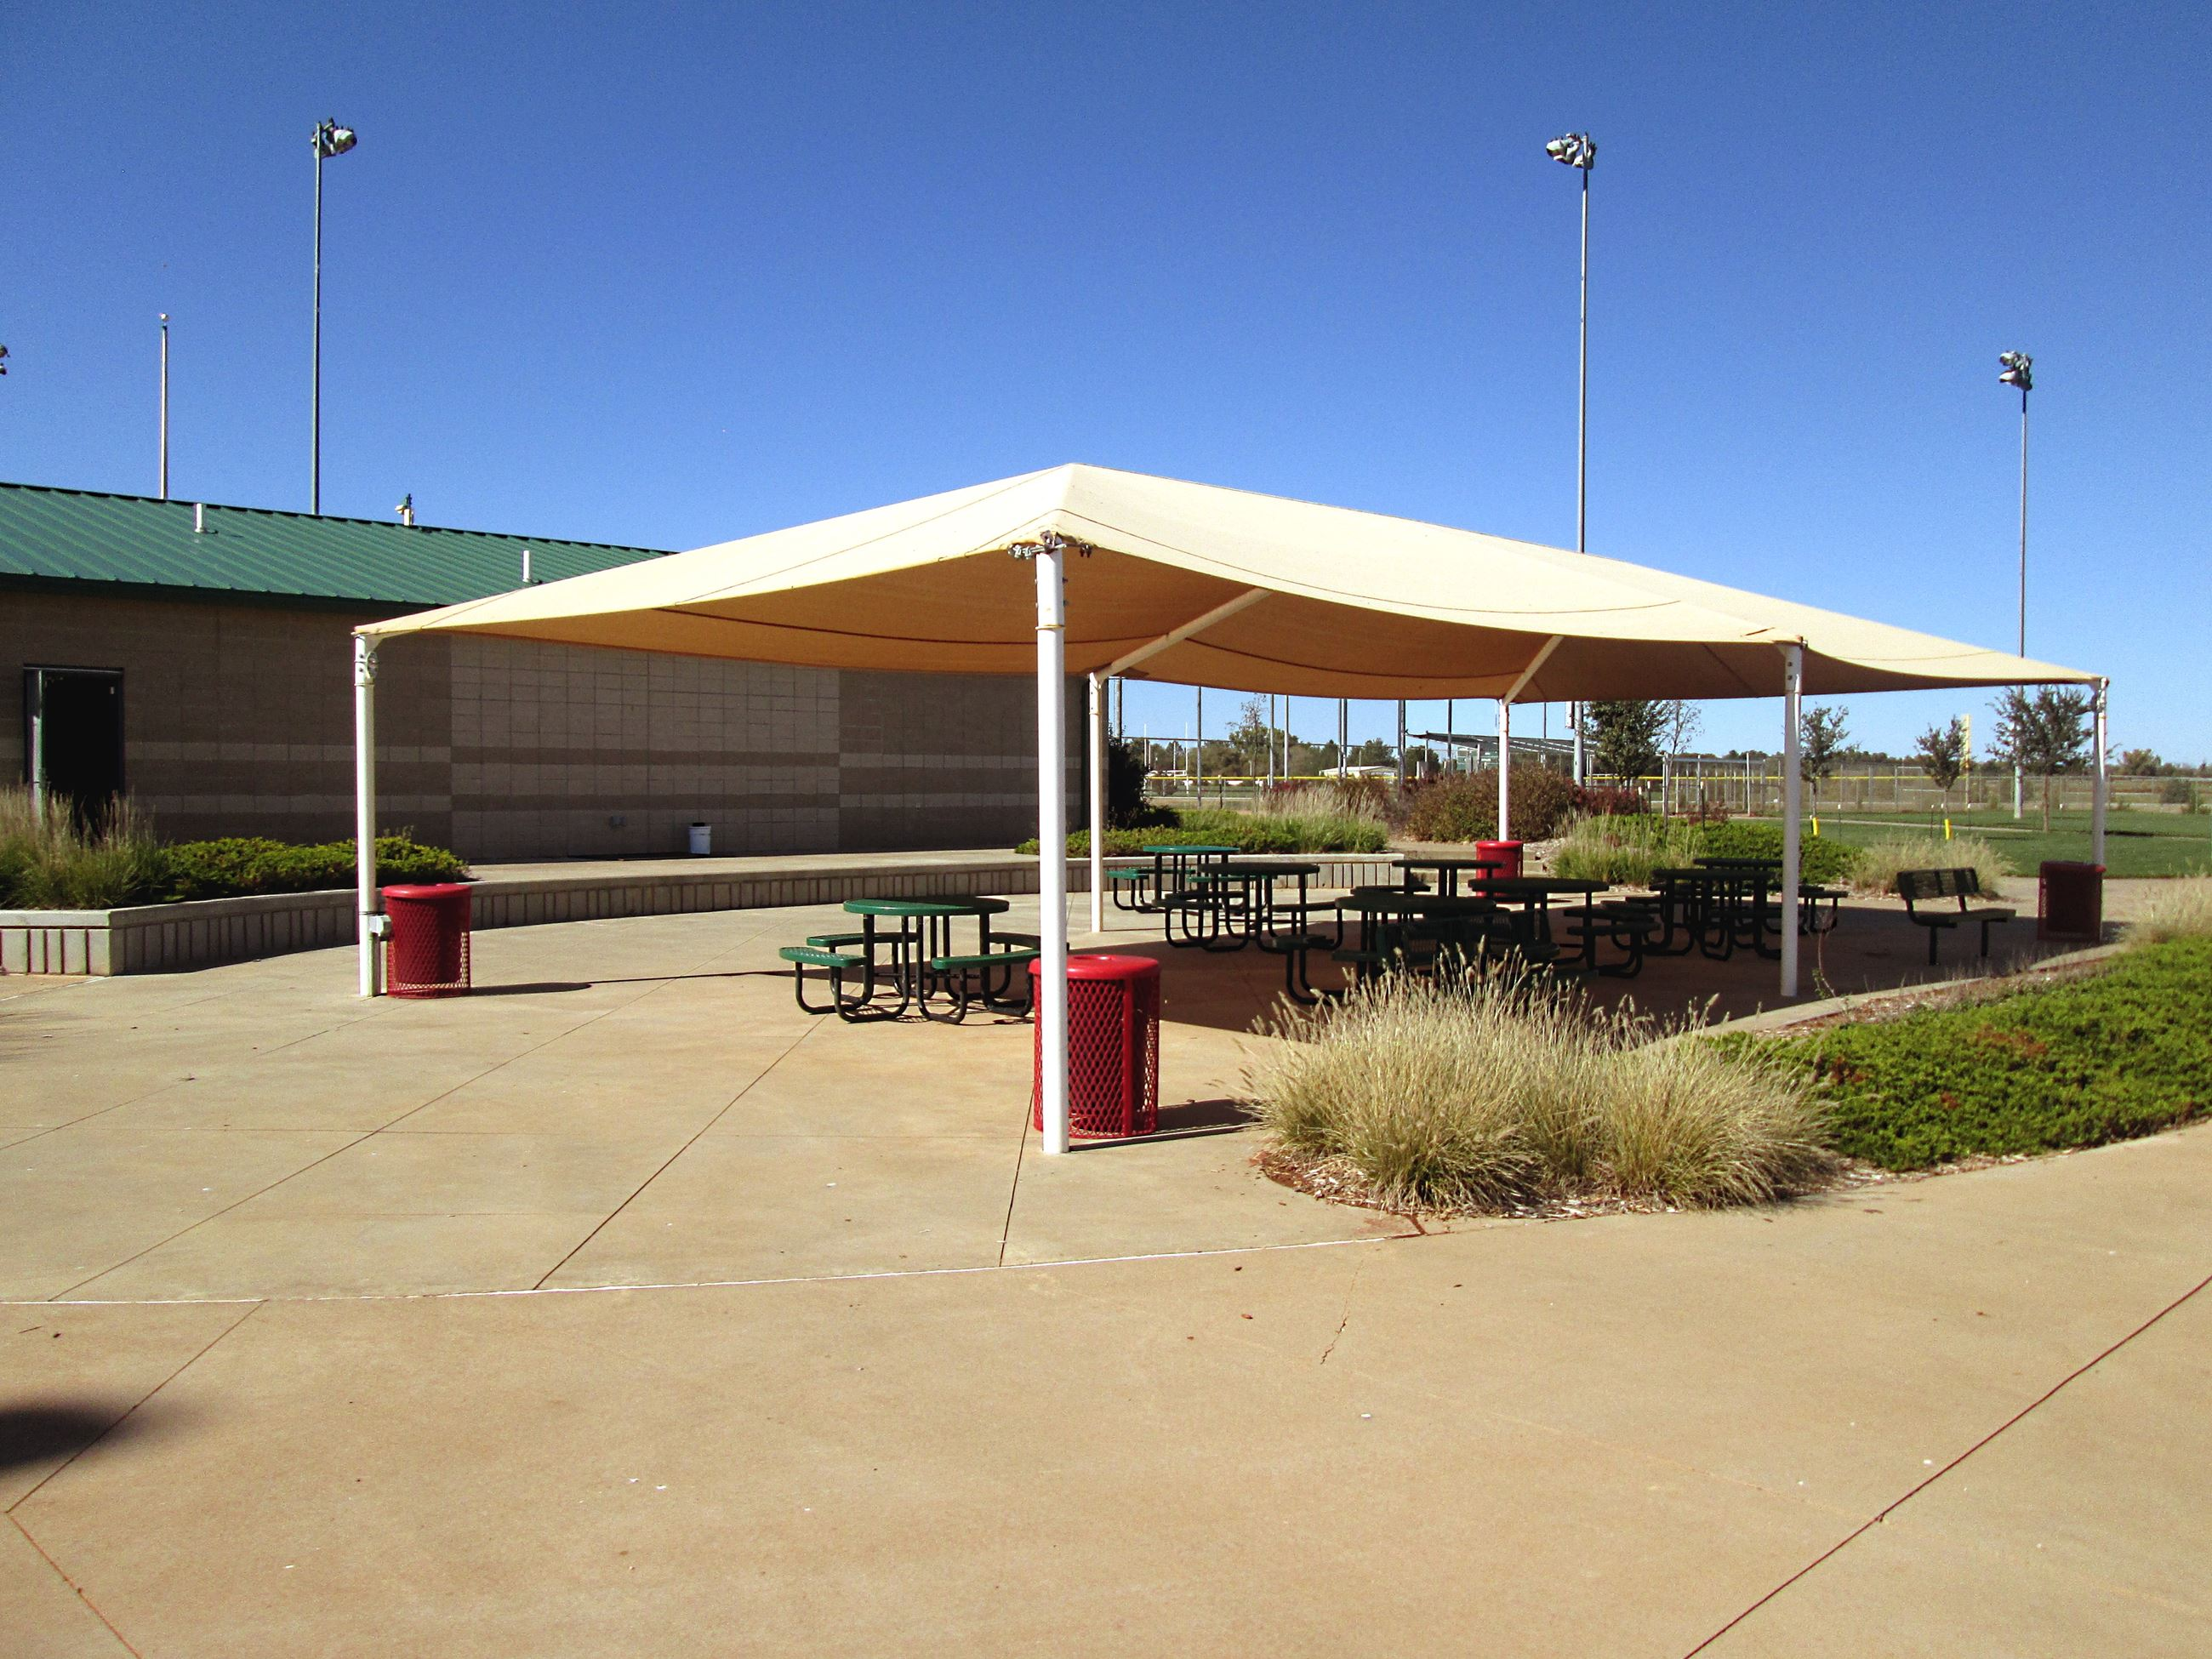 Awning Over Picnic Tables at Sports Complex